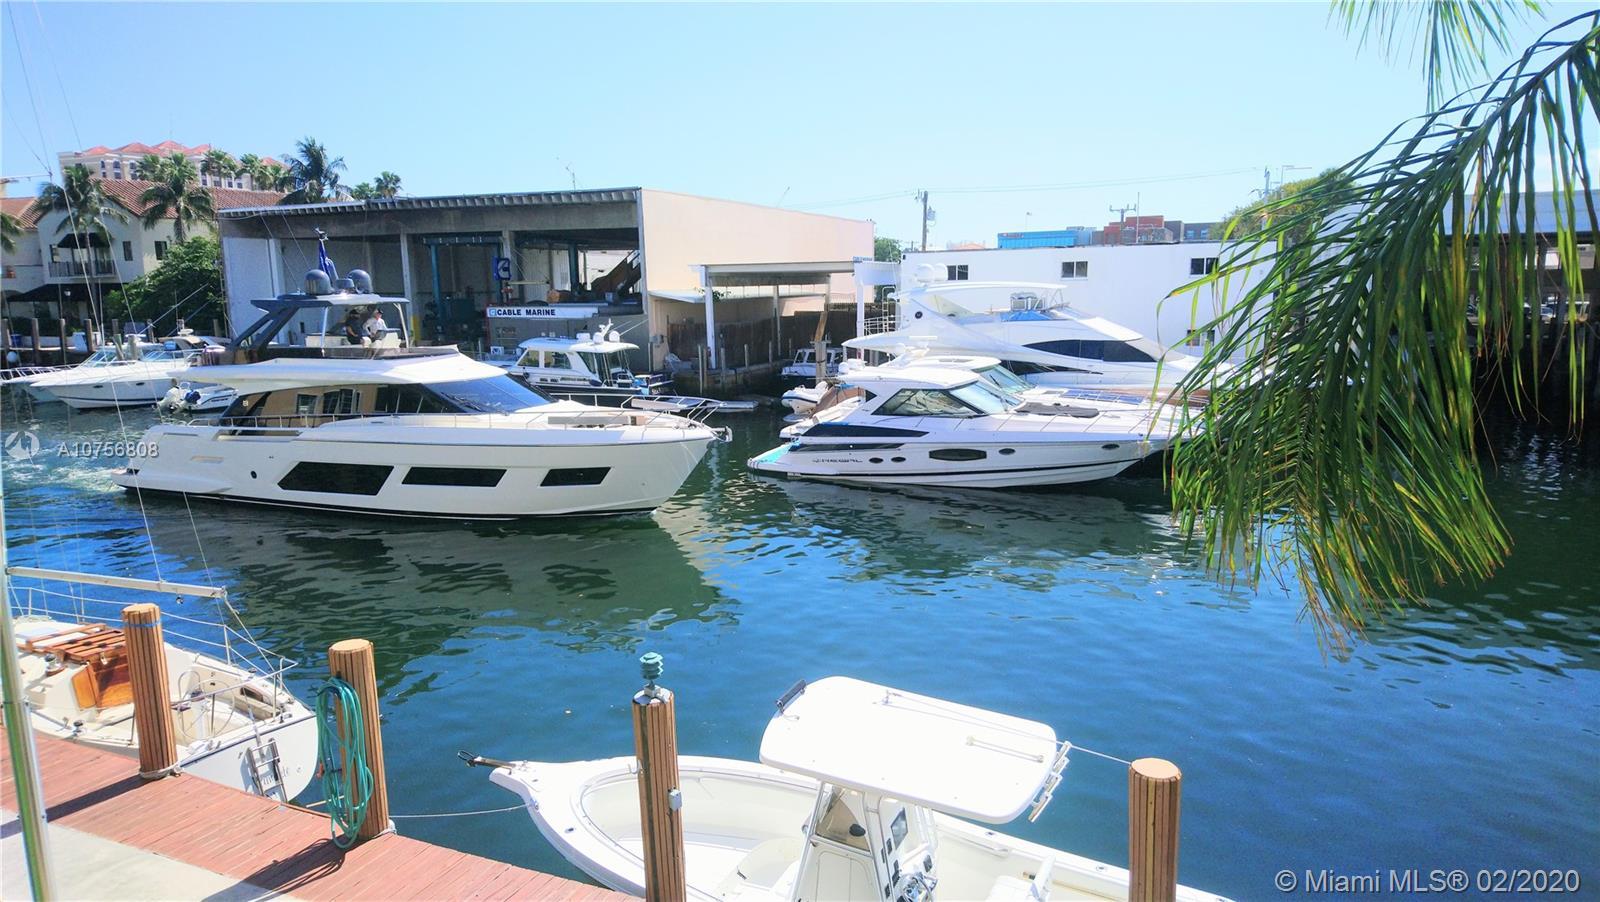 2 BED/ 2 BATH WATERFRONT CONDO IN THE DESIREABLE MARINA DEL MAR COMMUNITY. CORNER UNIT FEATURES THE BEST VIEW IN THE BUILDING! EXTRA WINDOWS ALLOWING NATURAL LIGHT AND VIEWS OF MILLION DOLLAR YACHTS FLOATING PAST YOUR LIVING AND DINING ROOM WINDOWS. SPACIOUS, OPEN FLOOR PLAN UNIT WITH LARGE BEDROOMS. COMPLETELY REMODELED KITCHEN AND BATHROOMS. TILE THROUGHOUT. LOTS OF CLOSET SPACE. NEW A/C. YOU ALSO HAVE A GREAT VIEW OF THE POOL. EVERY BUYERS DREAM!!!! WON'T LAST!!!!! EASY TO SHOW, CALL LISTING AGENT. Equal Housing Opportunity.